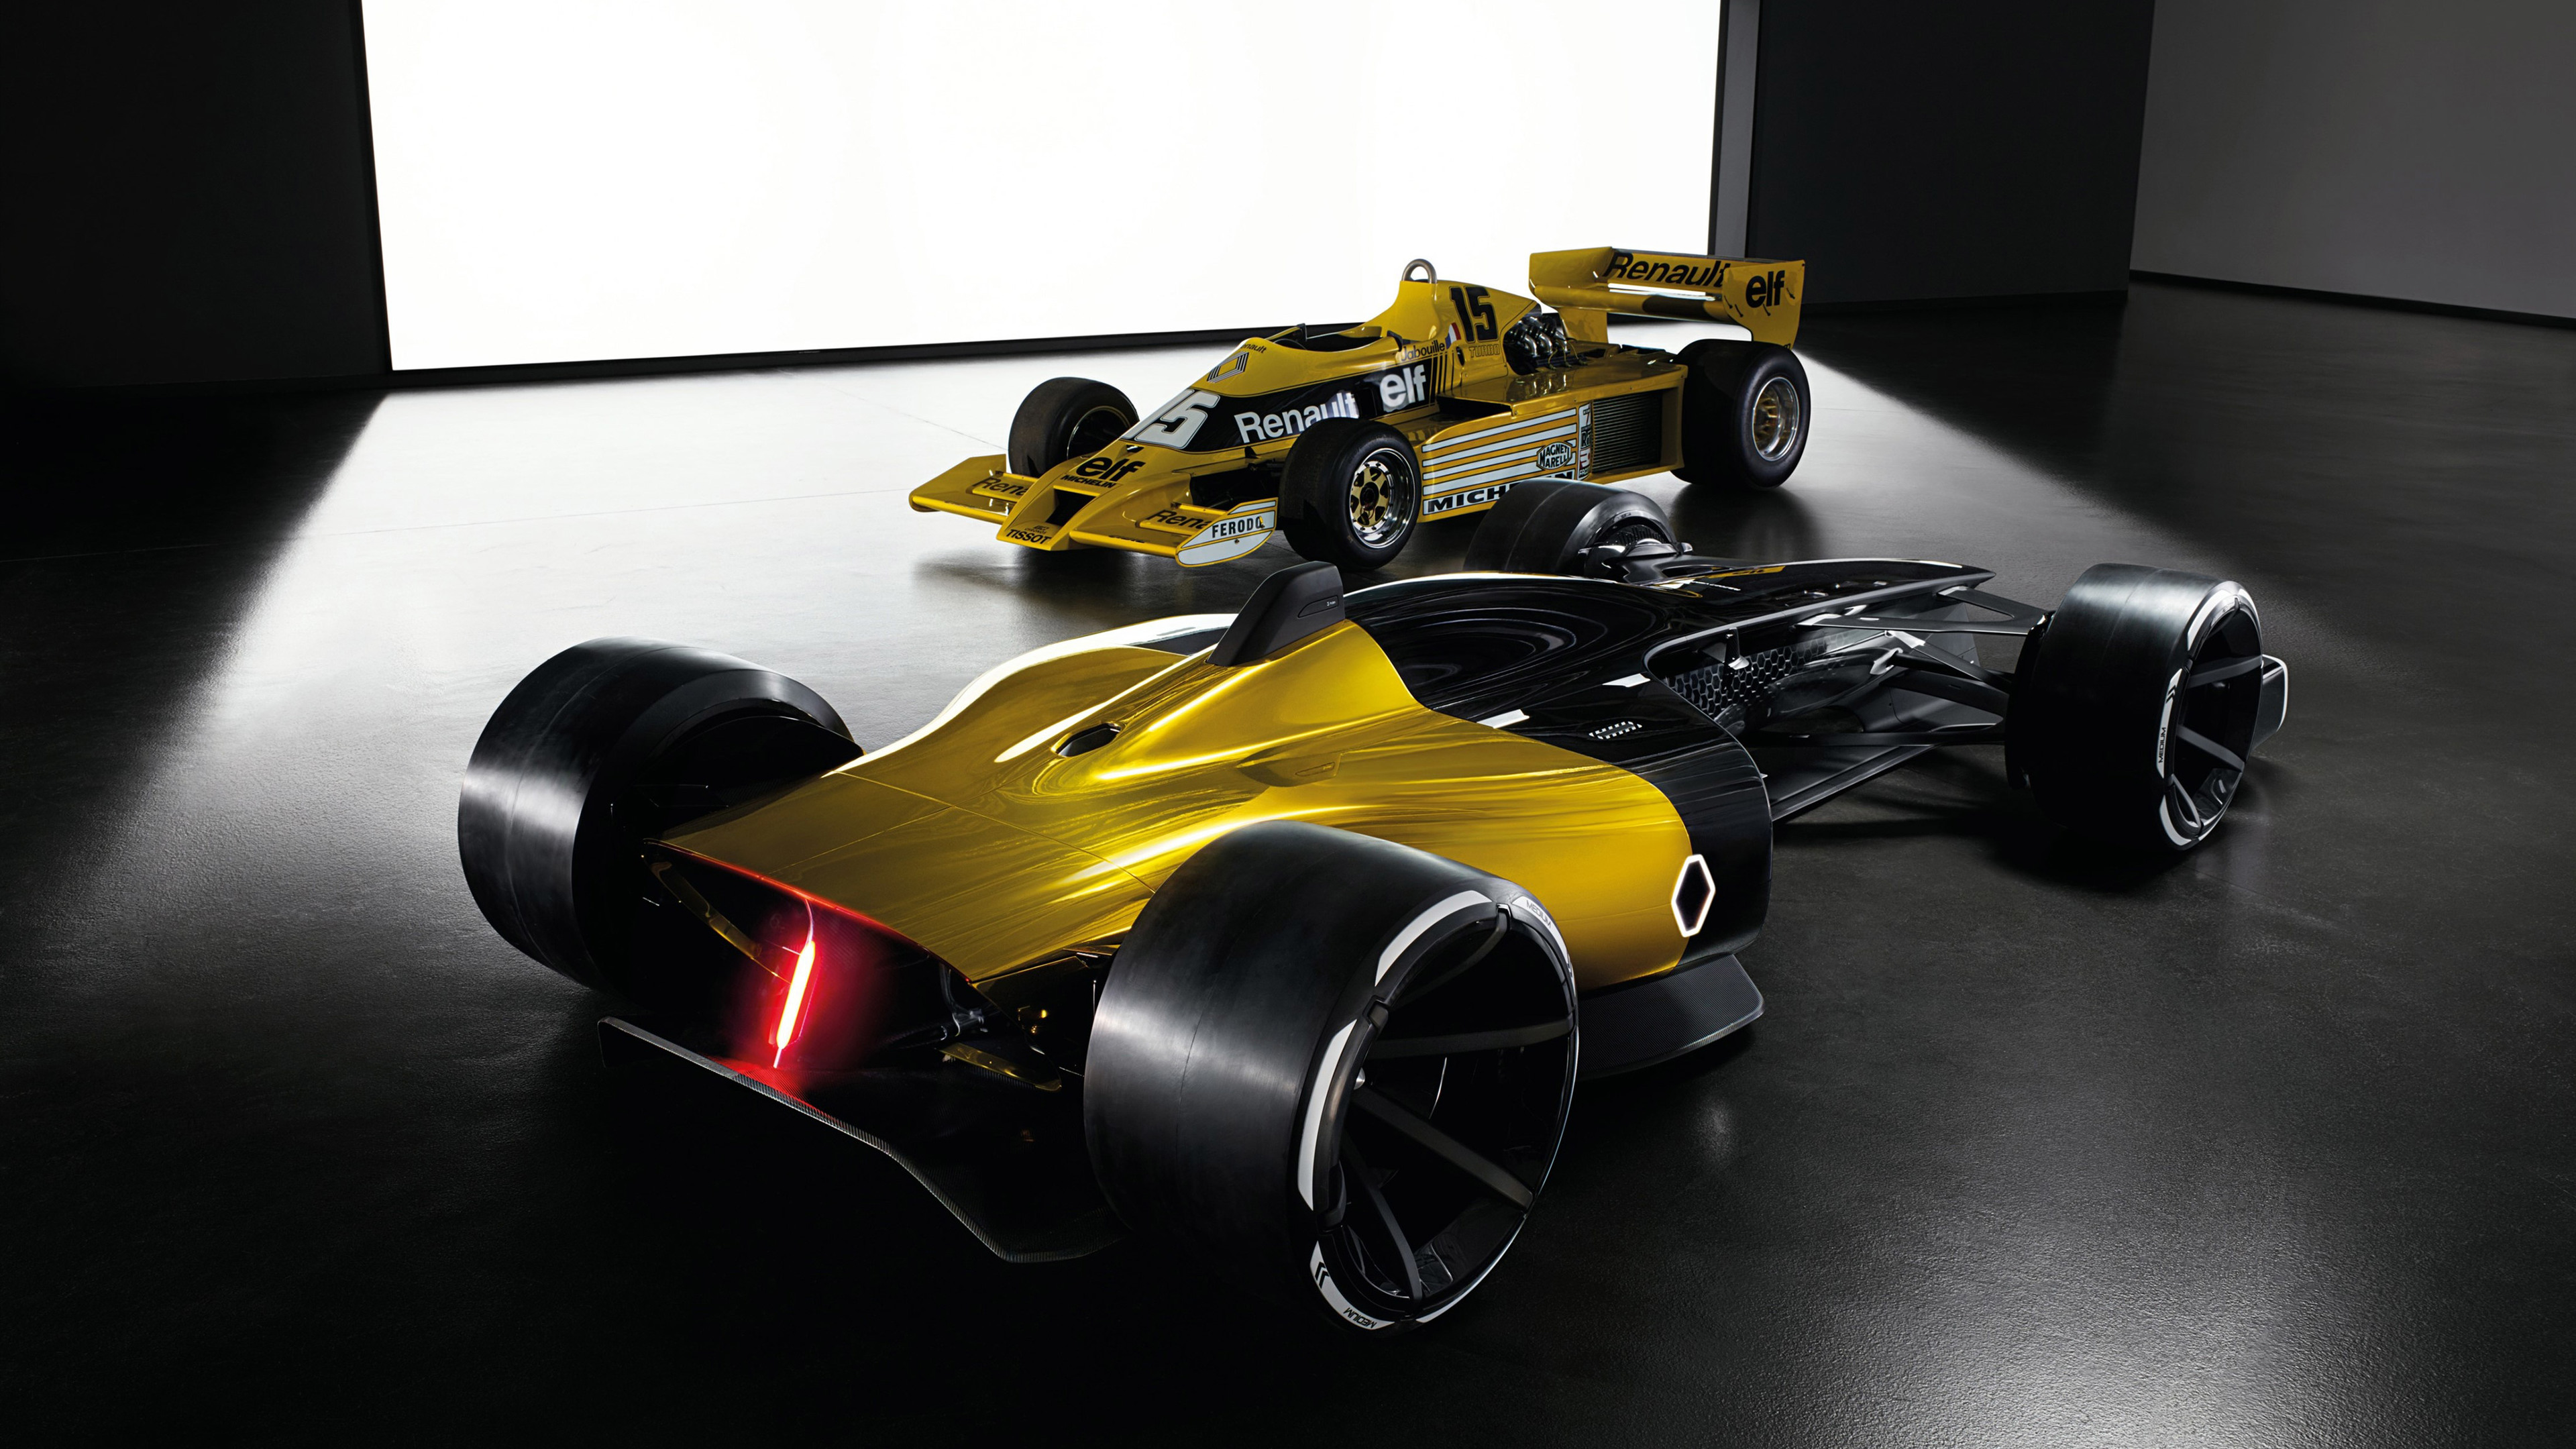 renault rs 2027 vision concept 2017 1539105221 - Renault RS 2027 Vision Concept 2017 - renault wallpapers, renault rs 2027 vision wallpapers, hd-wallpapers, concept cars wallpapers, 4k-wallpapers, 2017 cars wallpapers